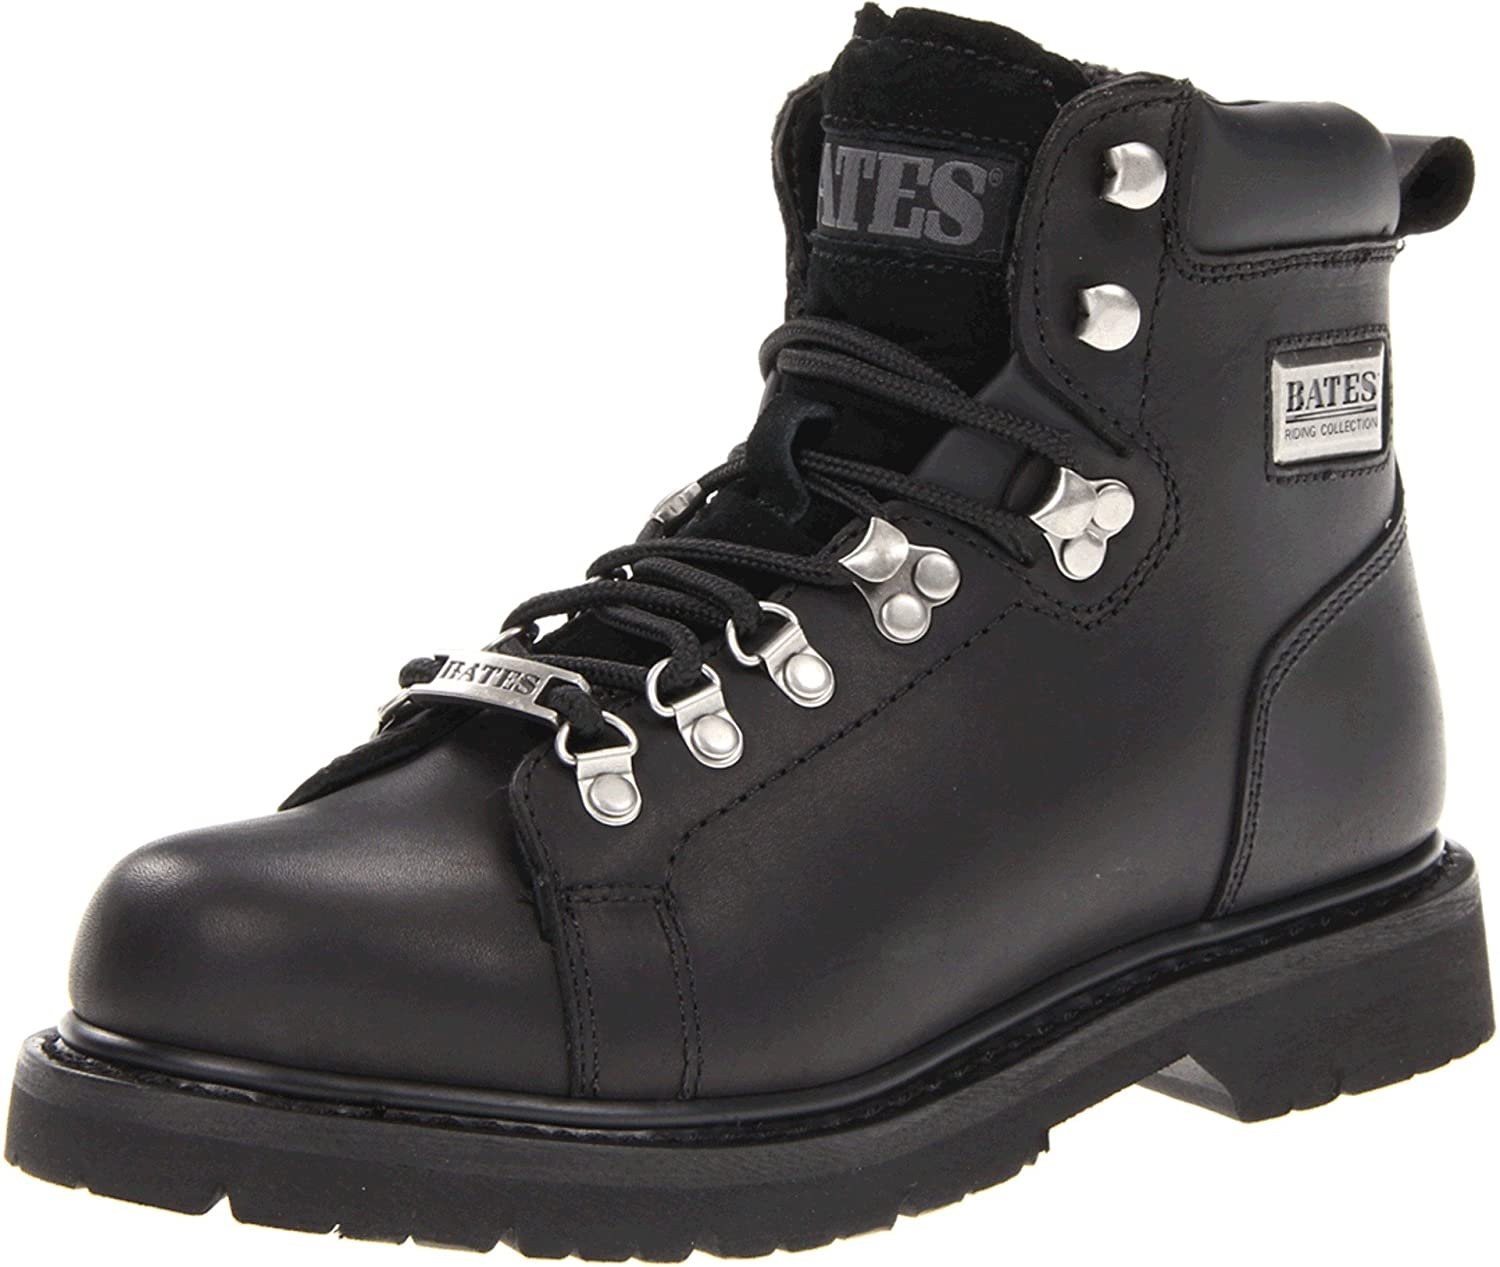 Bates Women's Black Canyon Motorcycle Boot B0083RQ1F0 8 B(M) US|Black